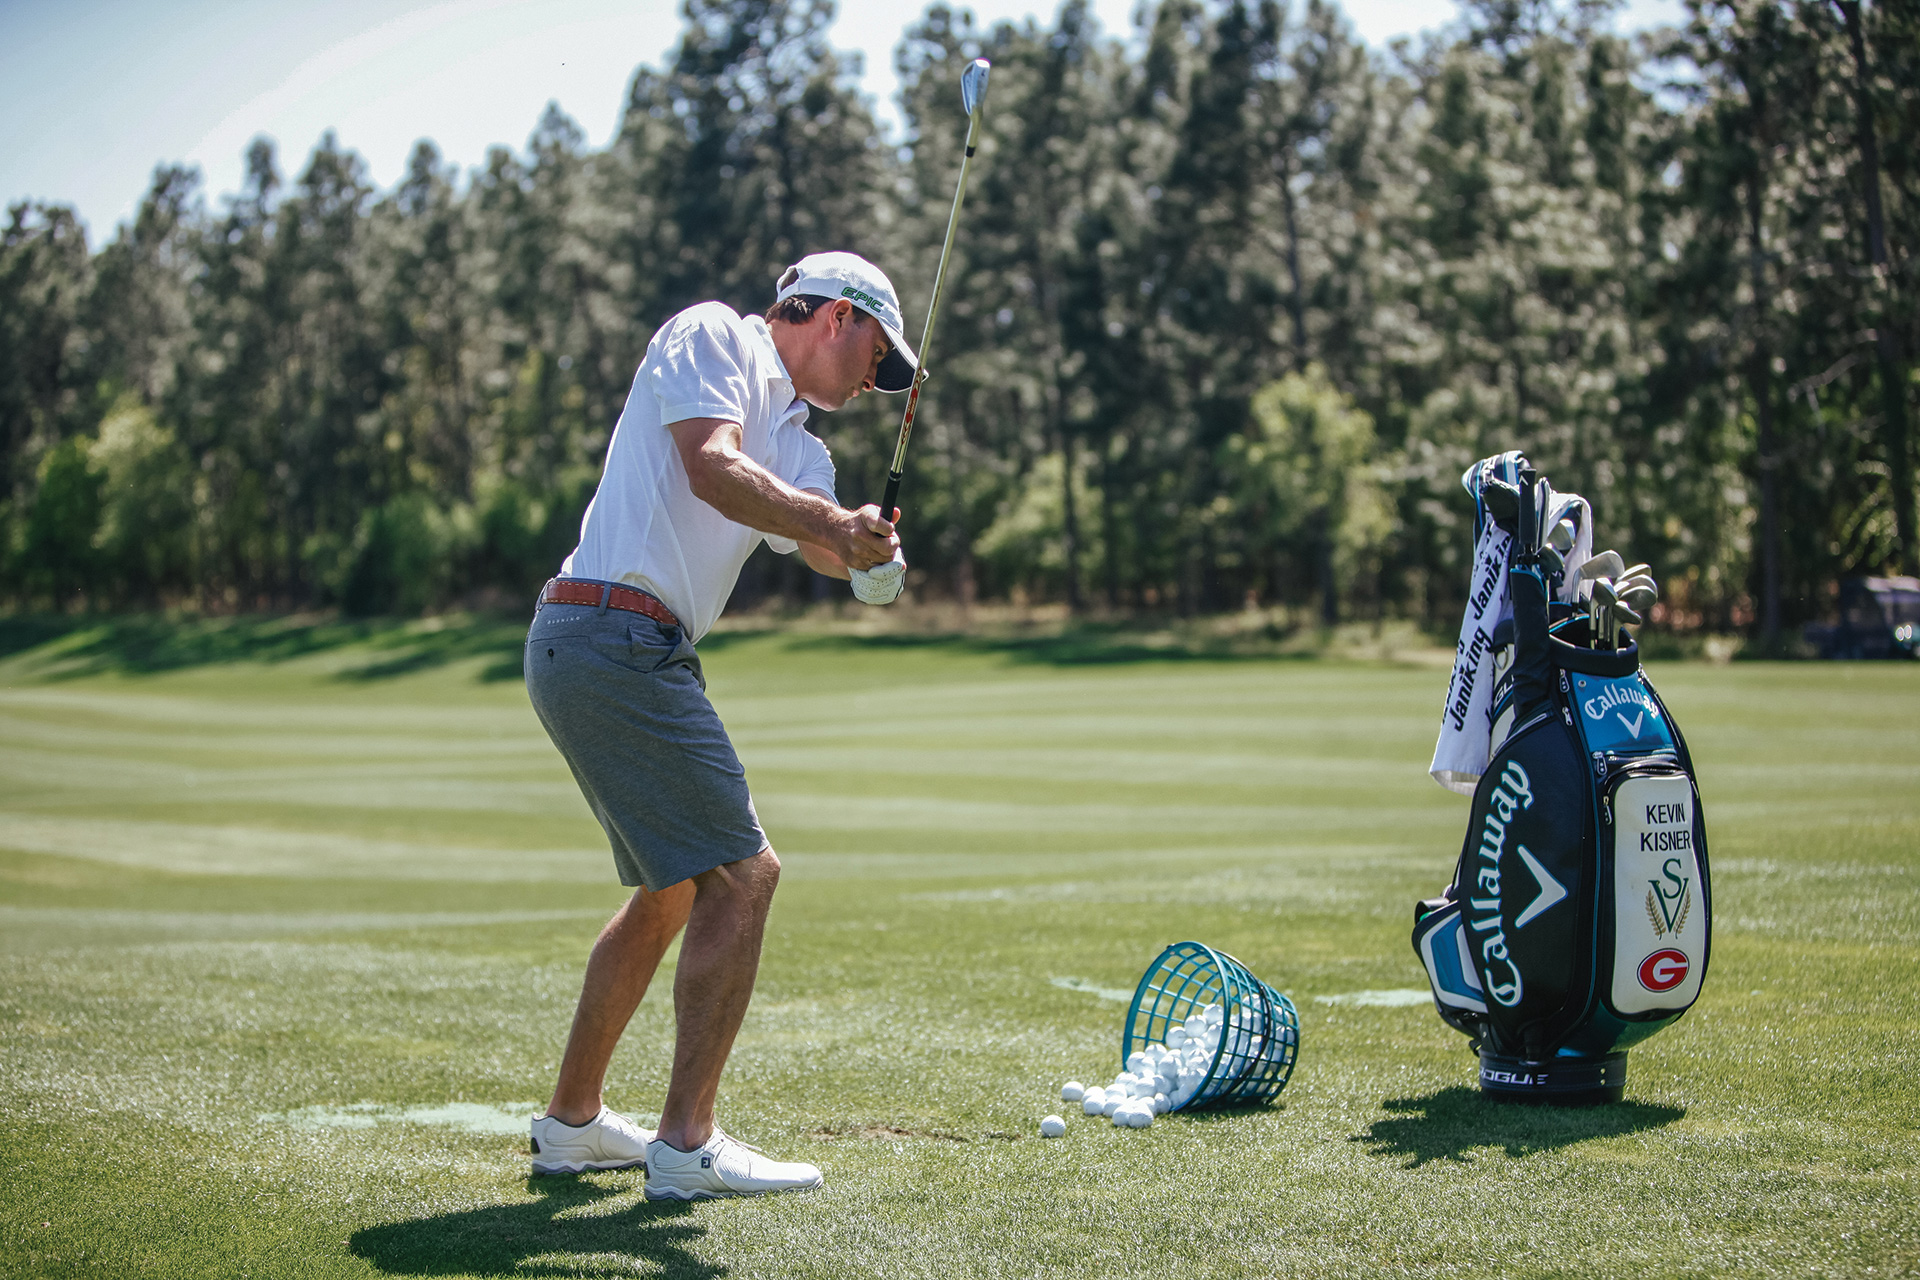 Golfer standing by bag of clubs and basket of balls